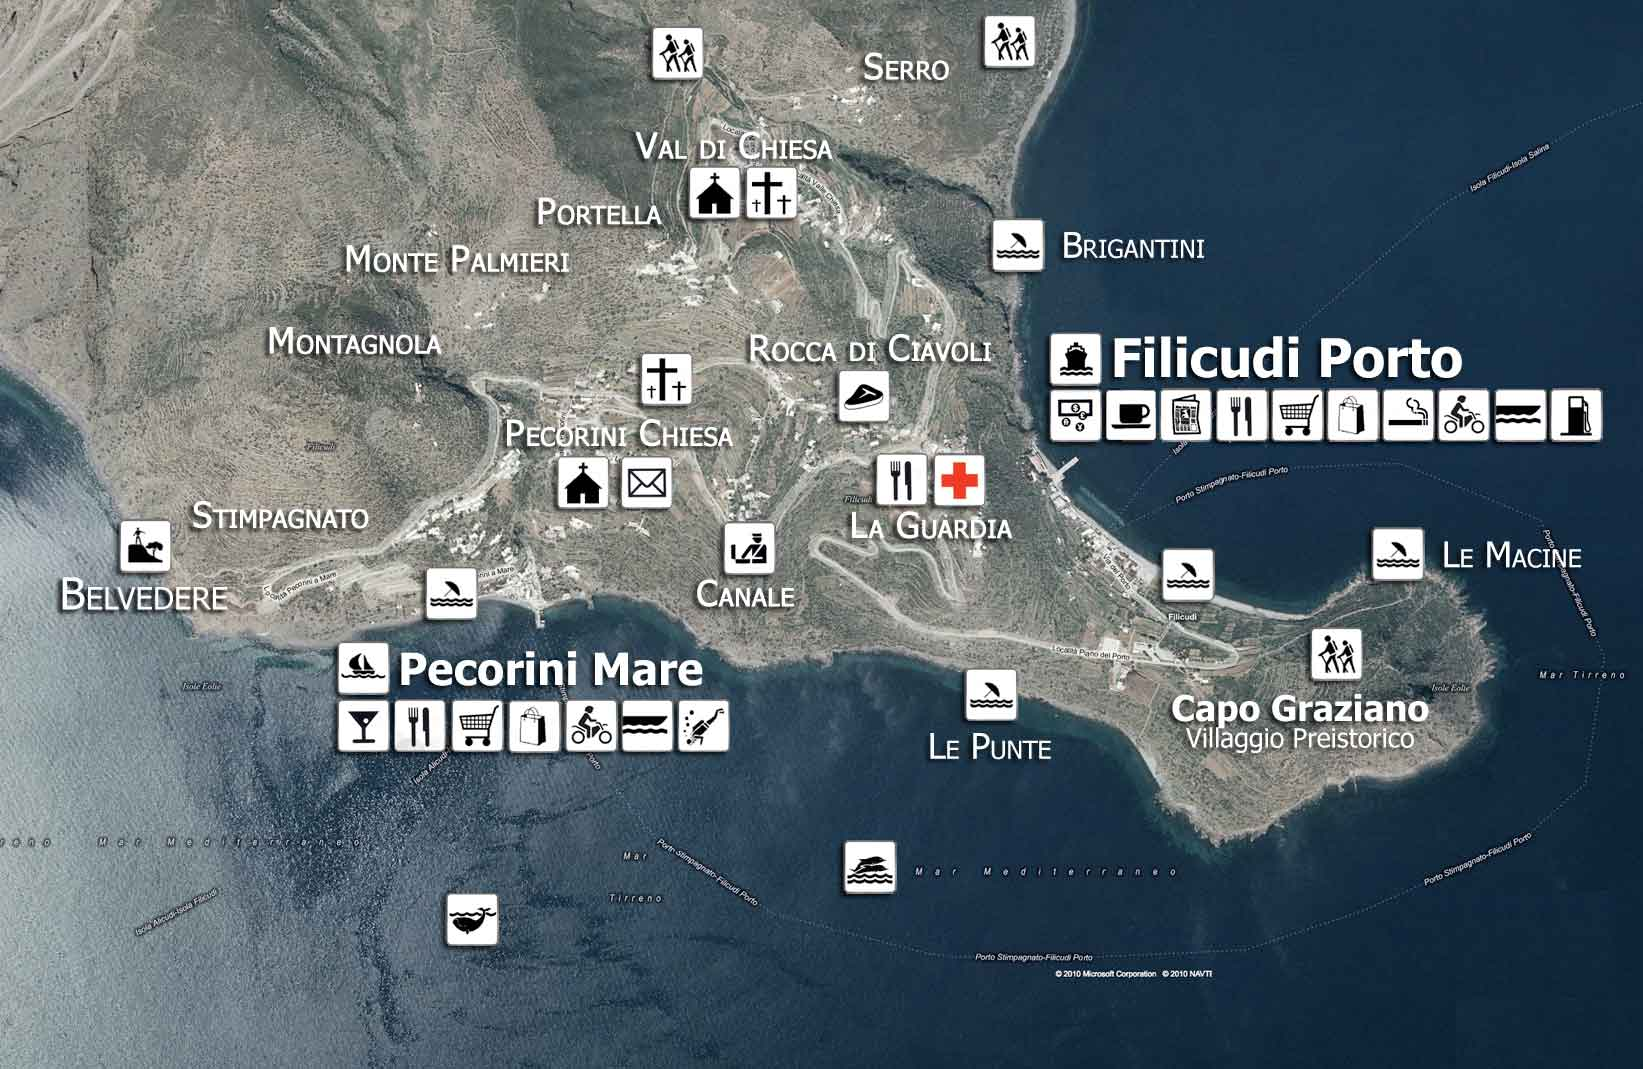 Map of the attractions of Filicudi - Sicily - Aeolian Islands